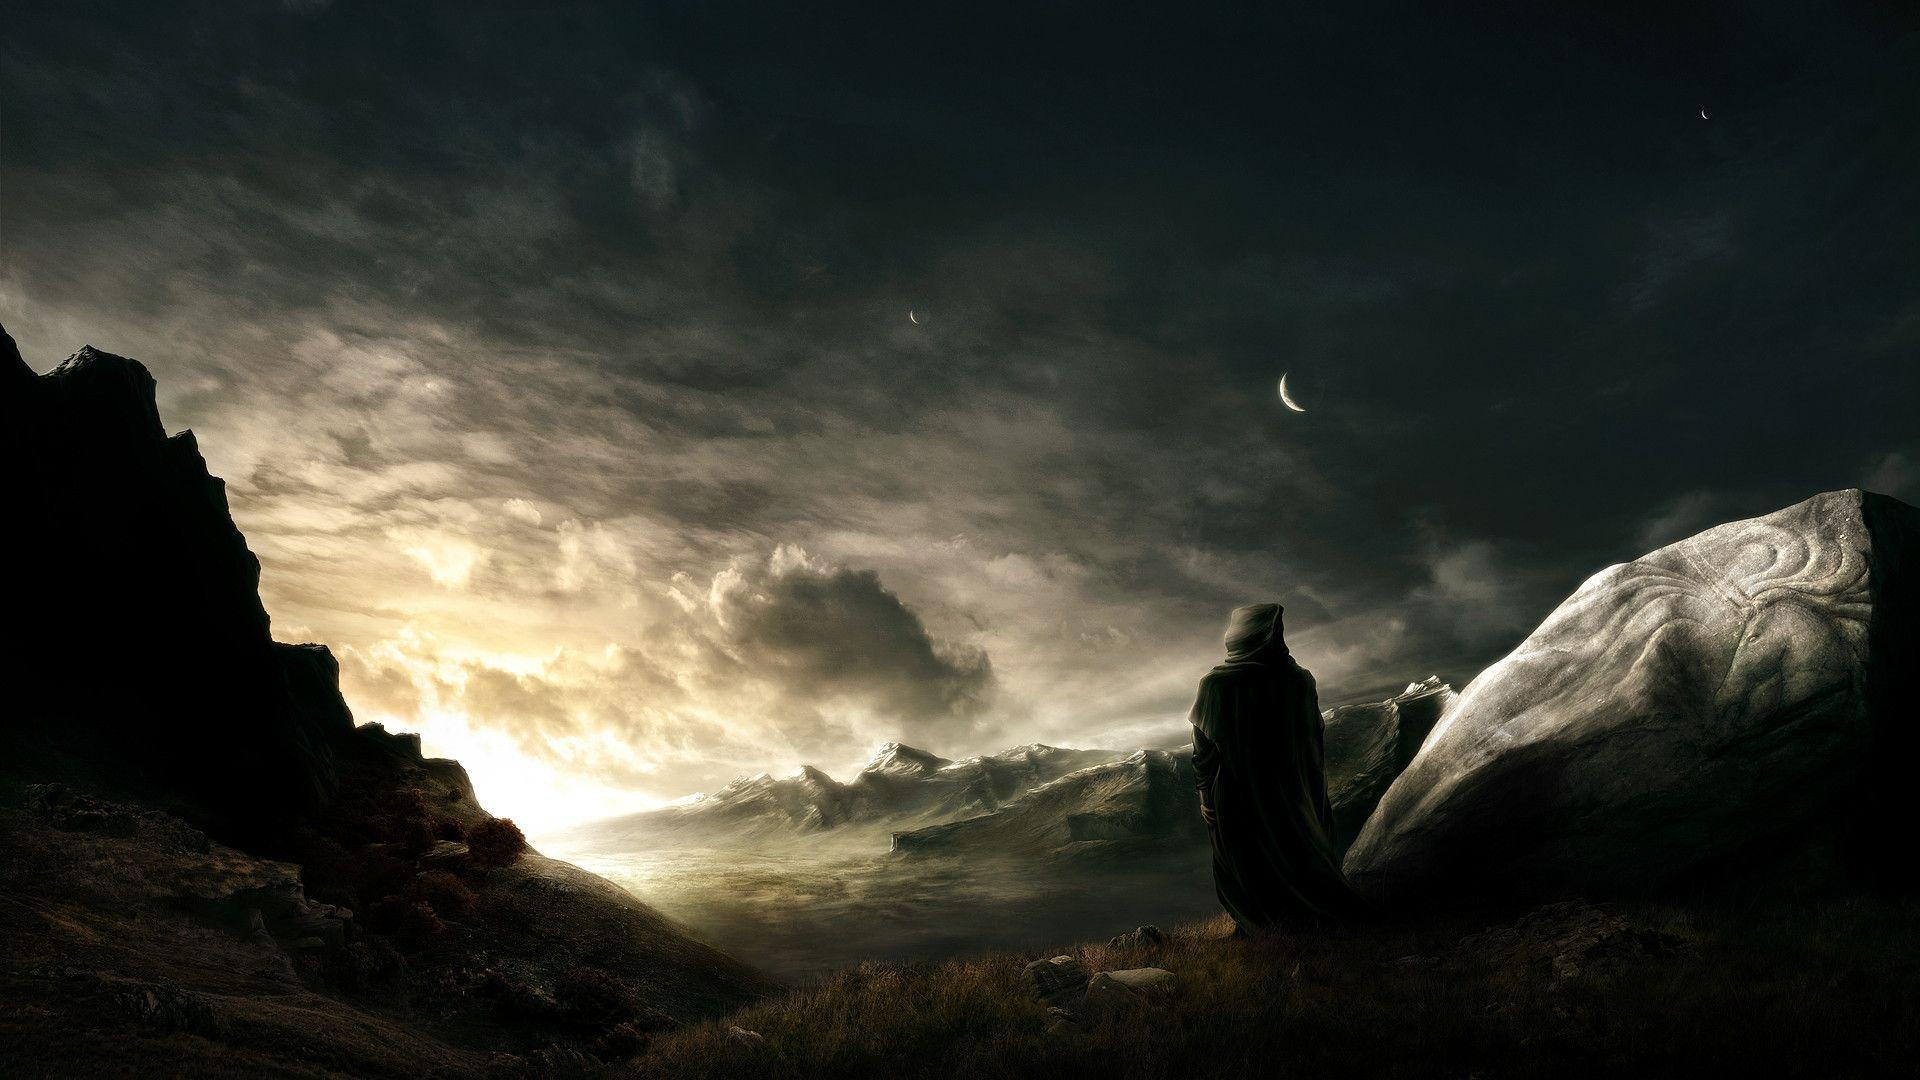 Wallpapers For > Final Fantasy Landscape Hd Photo Backgrounds for Powerpoint Templates - PPT Backgrounds